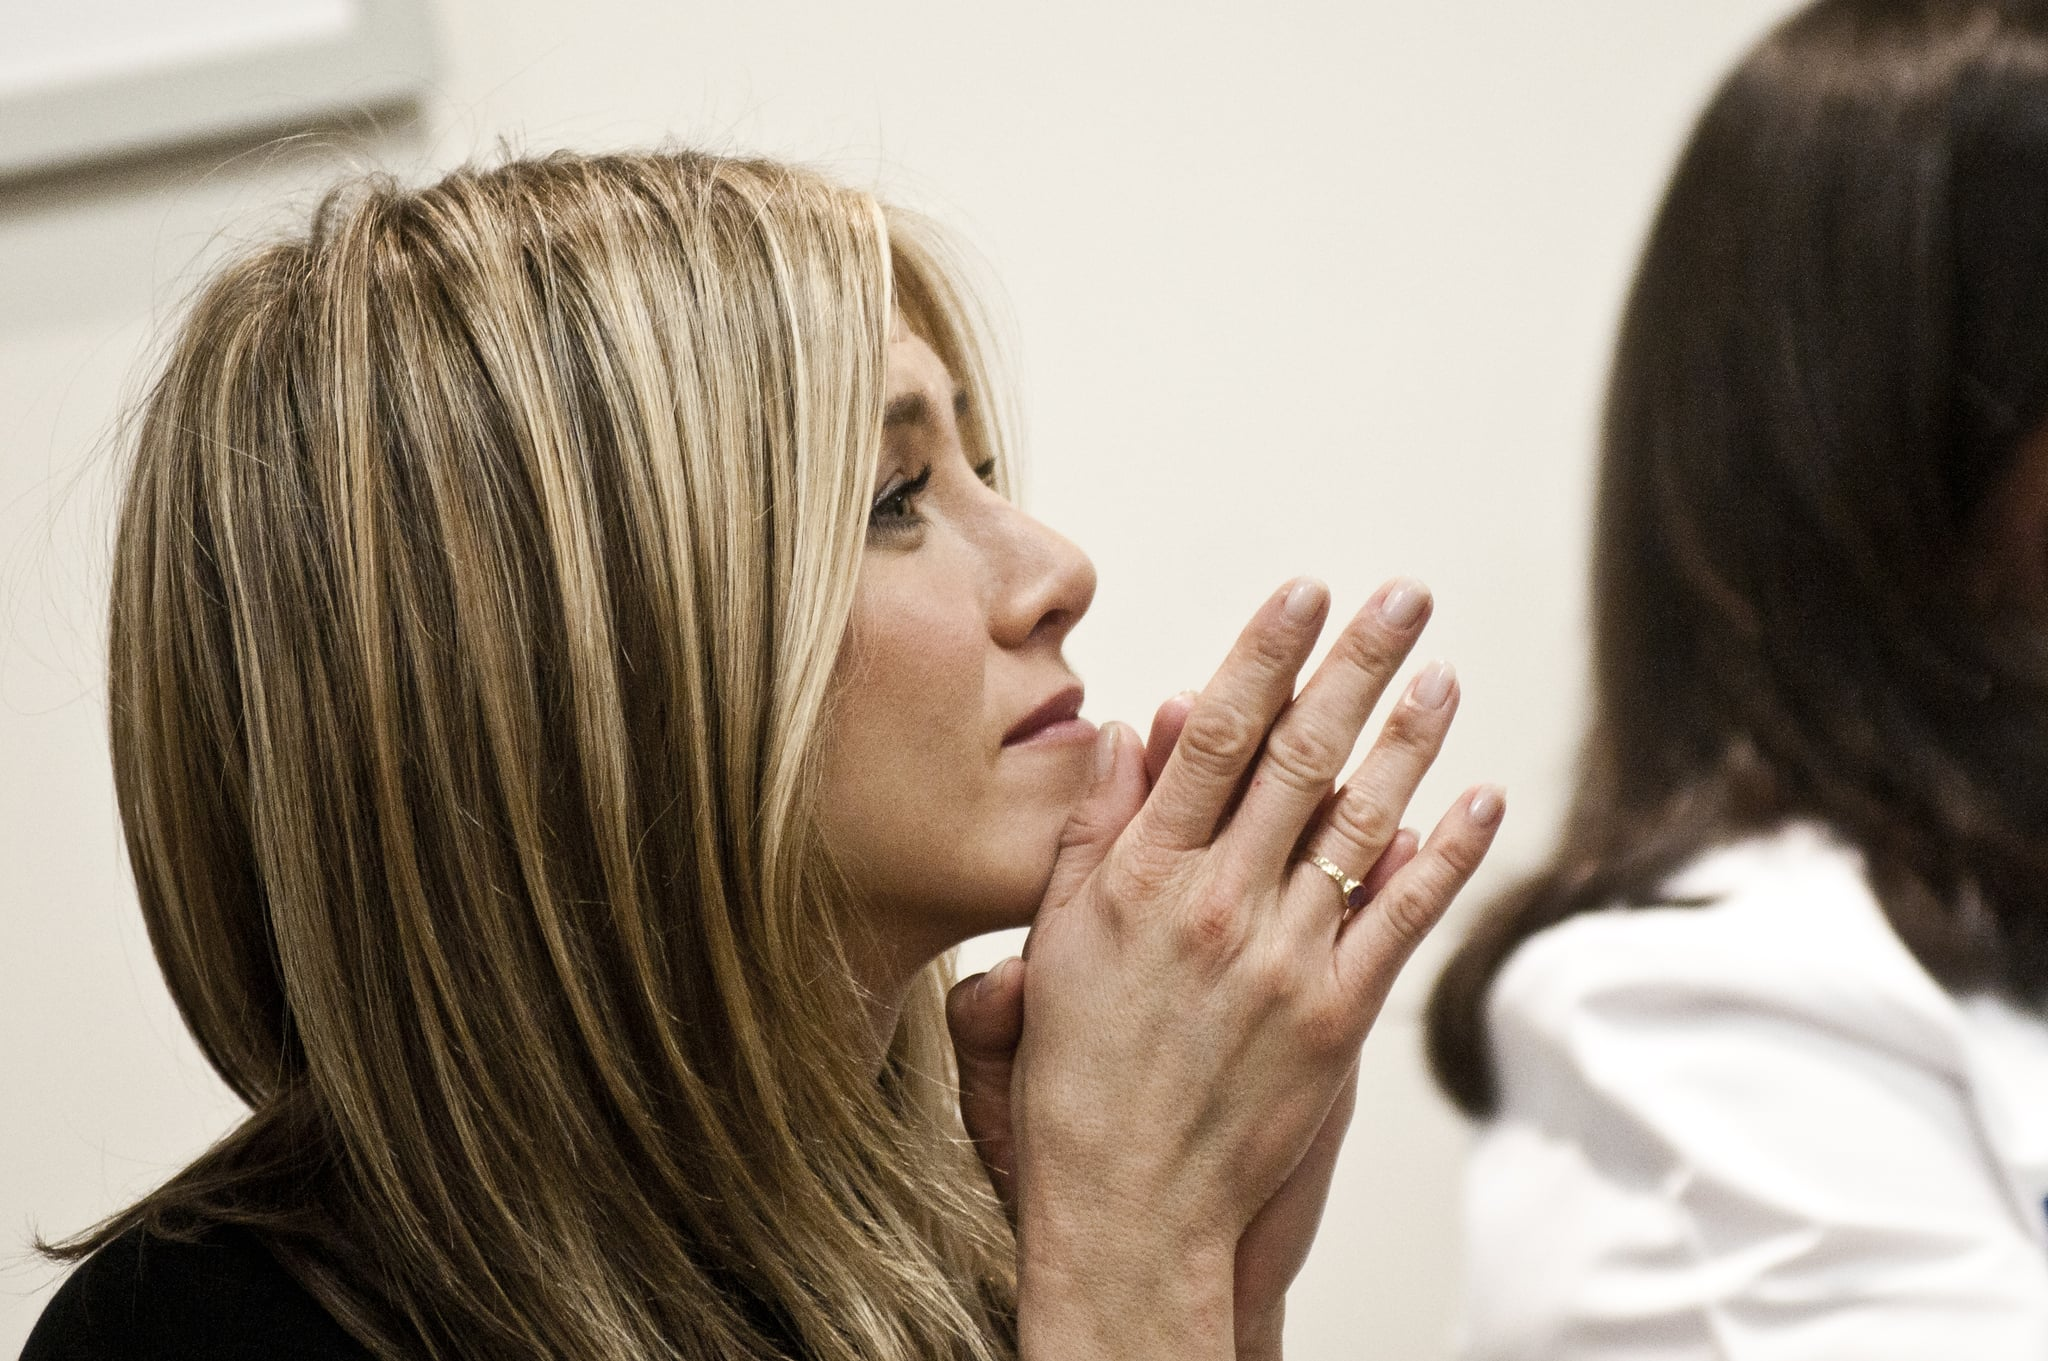 Jennifer Aniston has been focused on breast-cancer awareness in recent weeks.